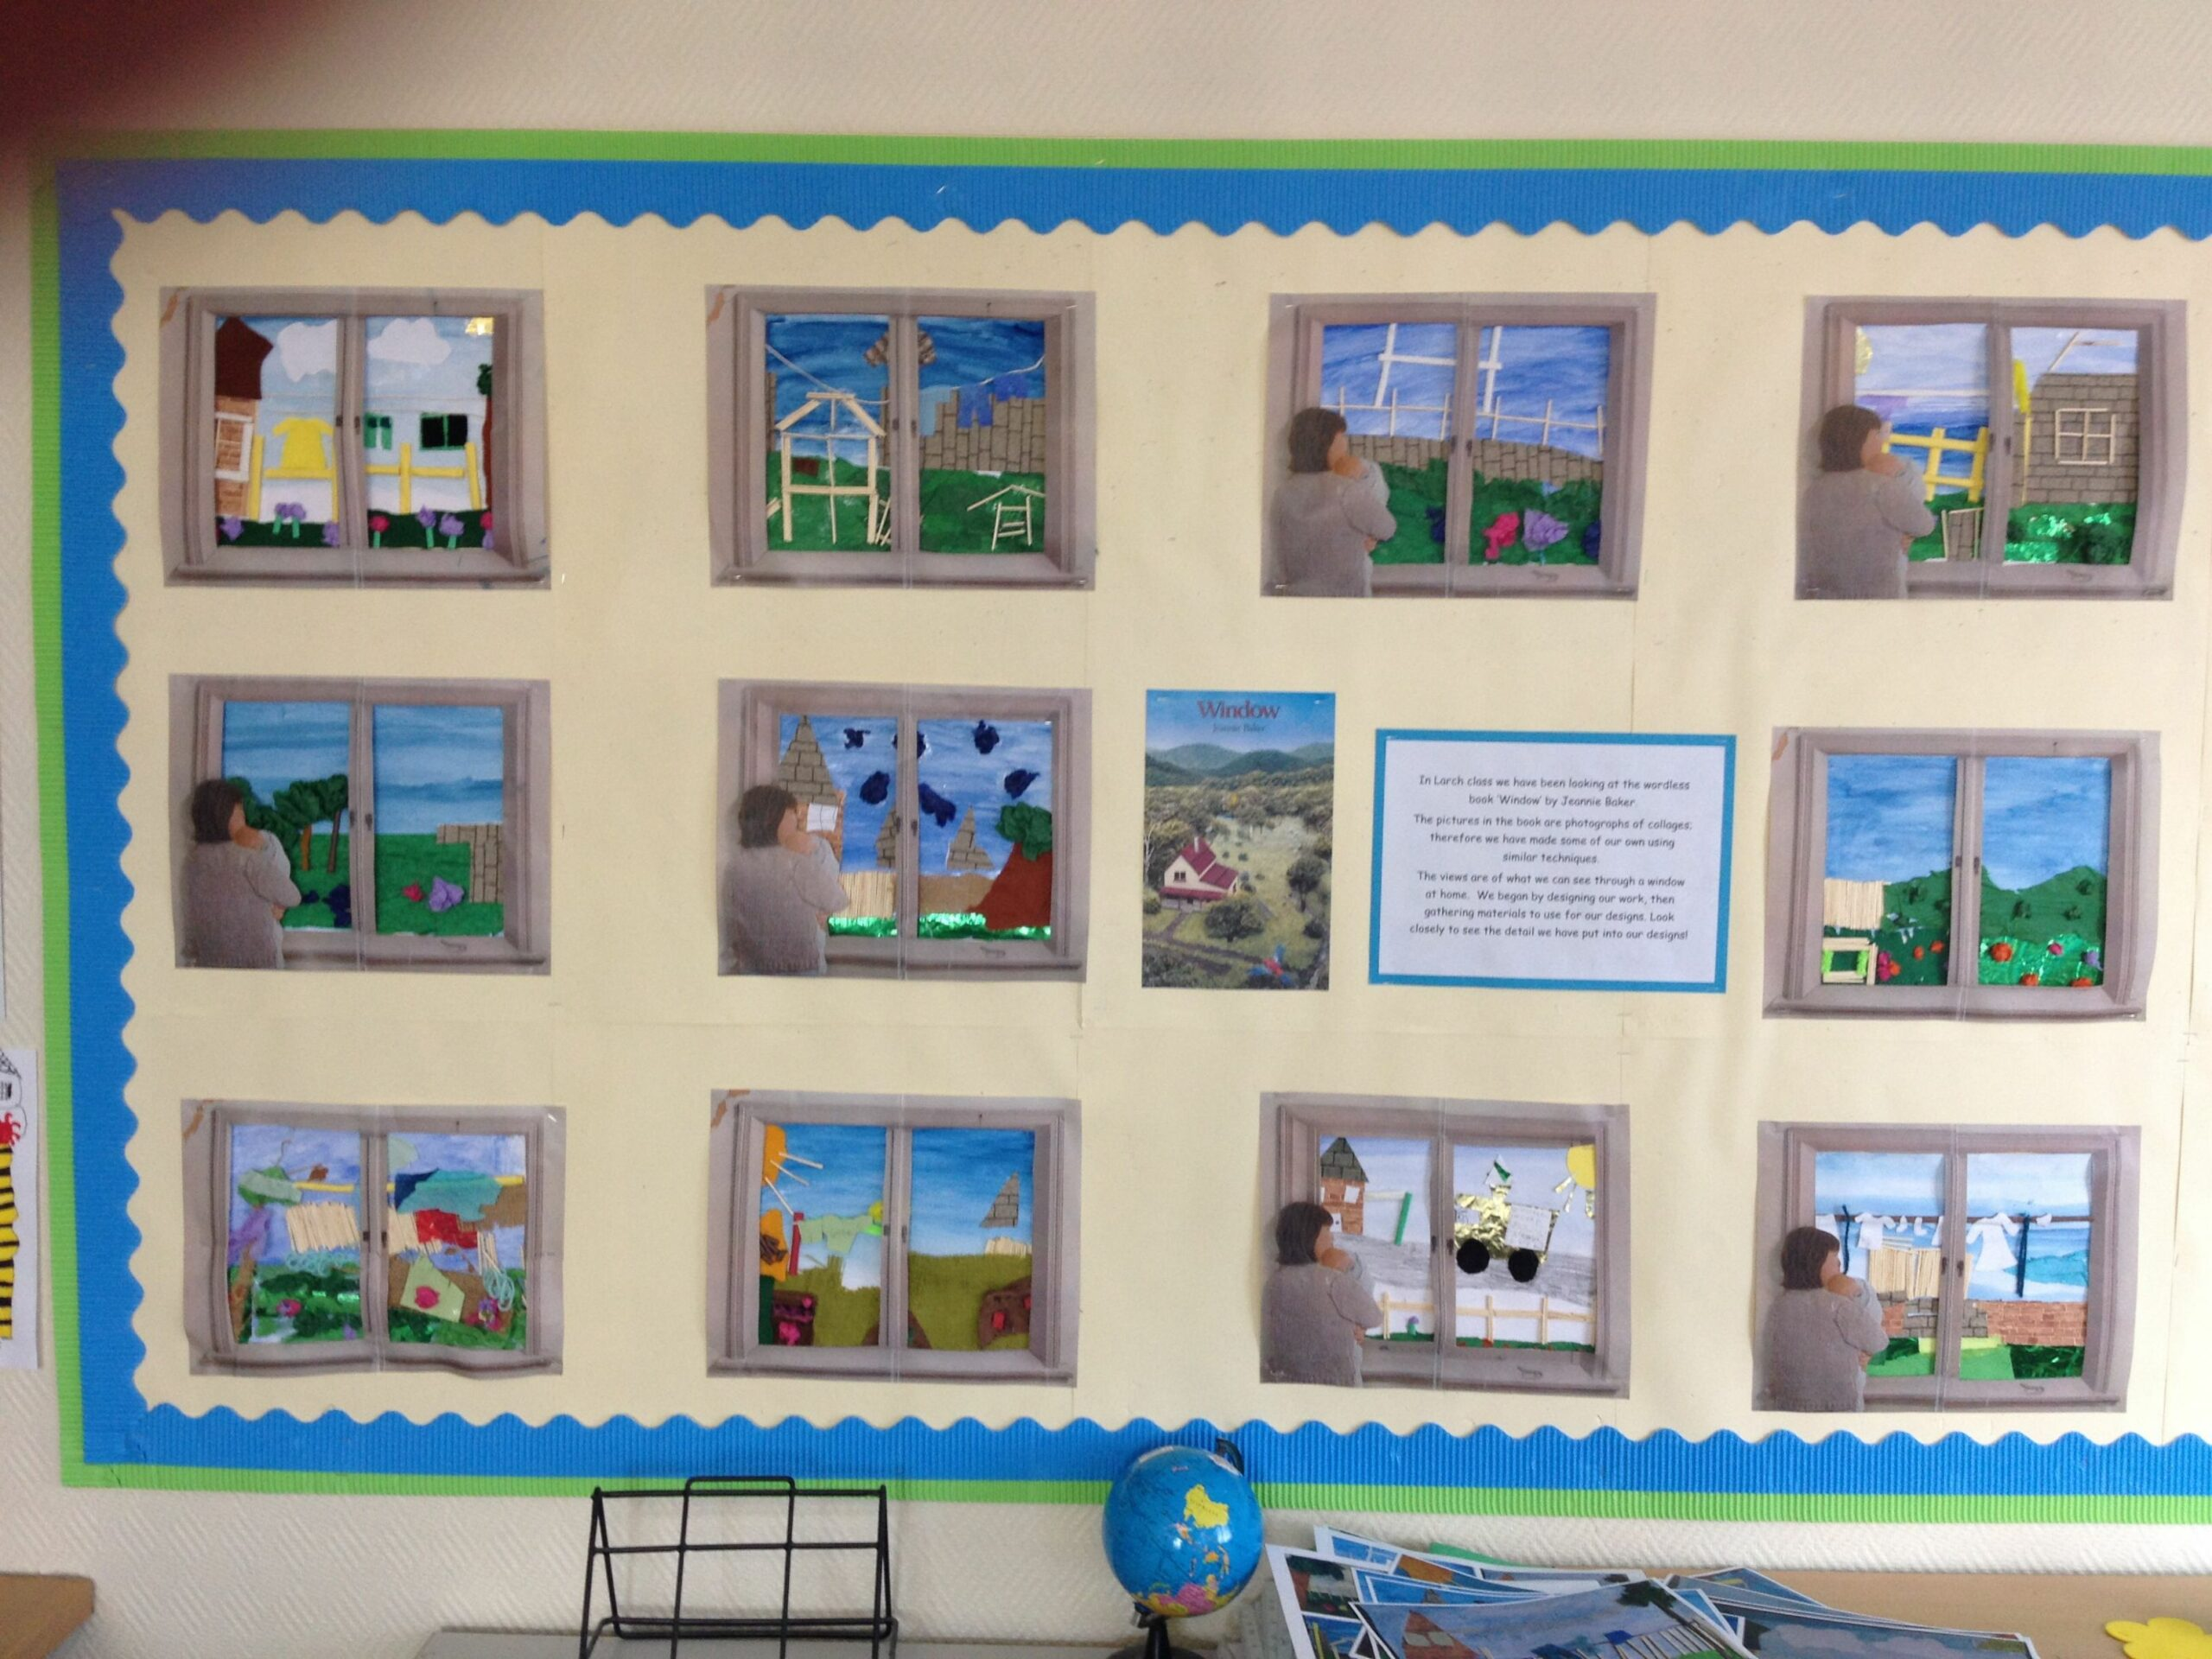 Our beautiful collages based on the book 'Window' by Jeannie Baker ...